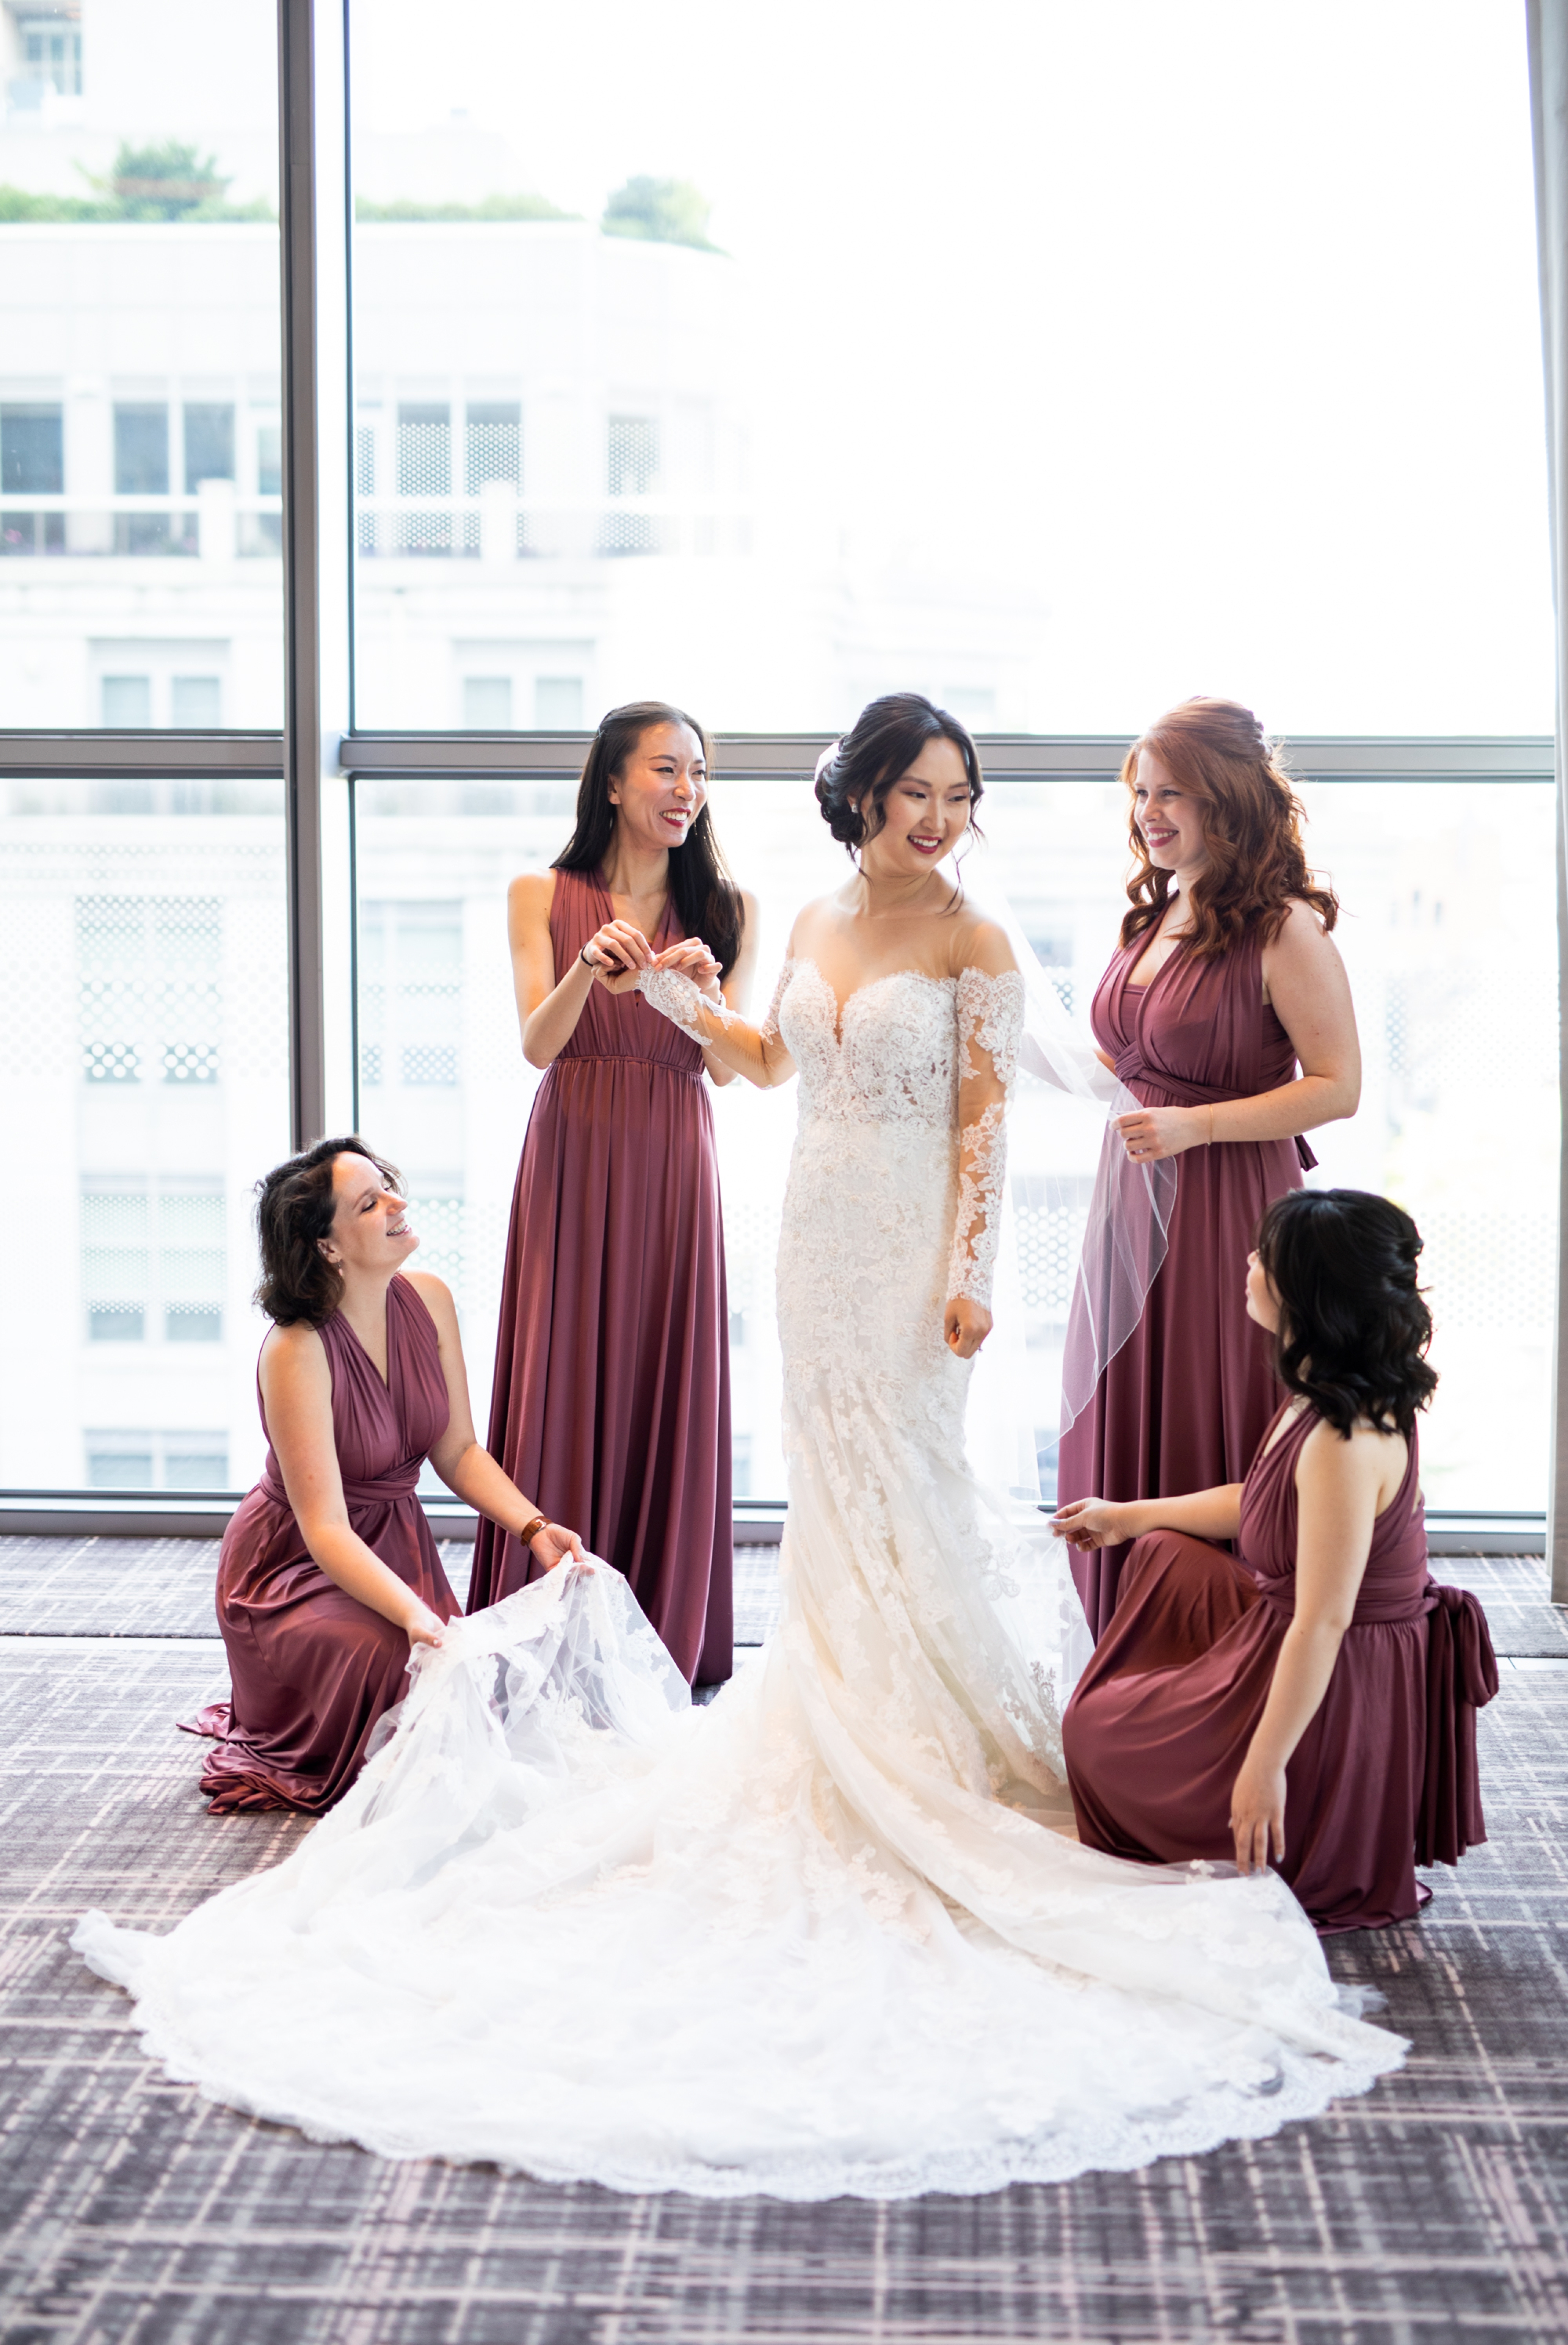 Bridesmaids Henkaa Dress Four Seasons Chinese Wedding Zsuzsi Pal Photography Cindy Brian